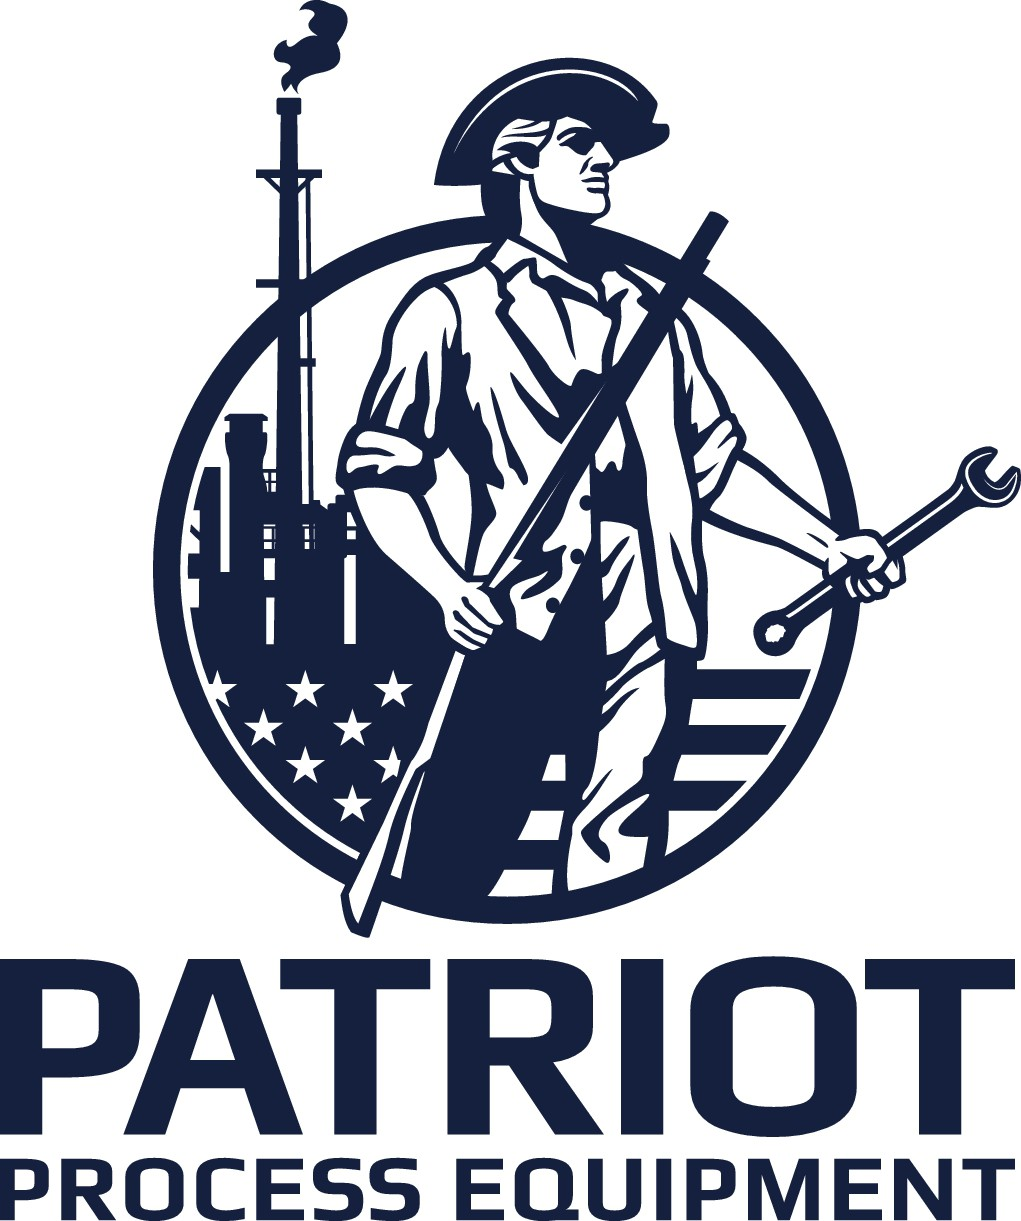 Patriot Process Equipment needs a cool logo for our new company